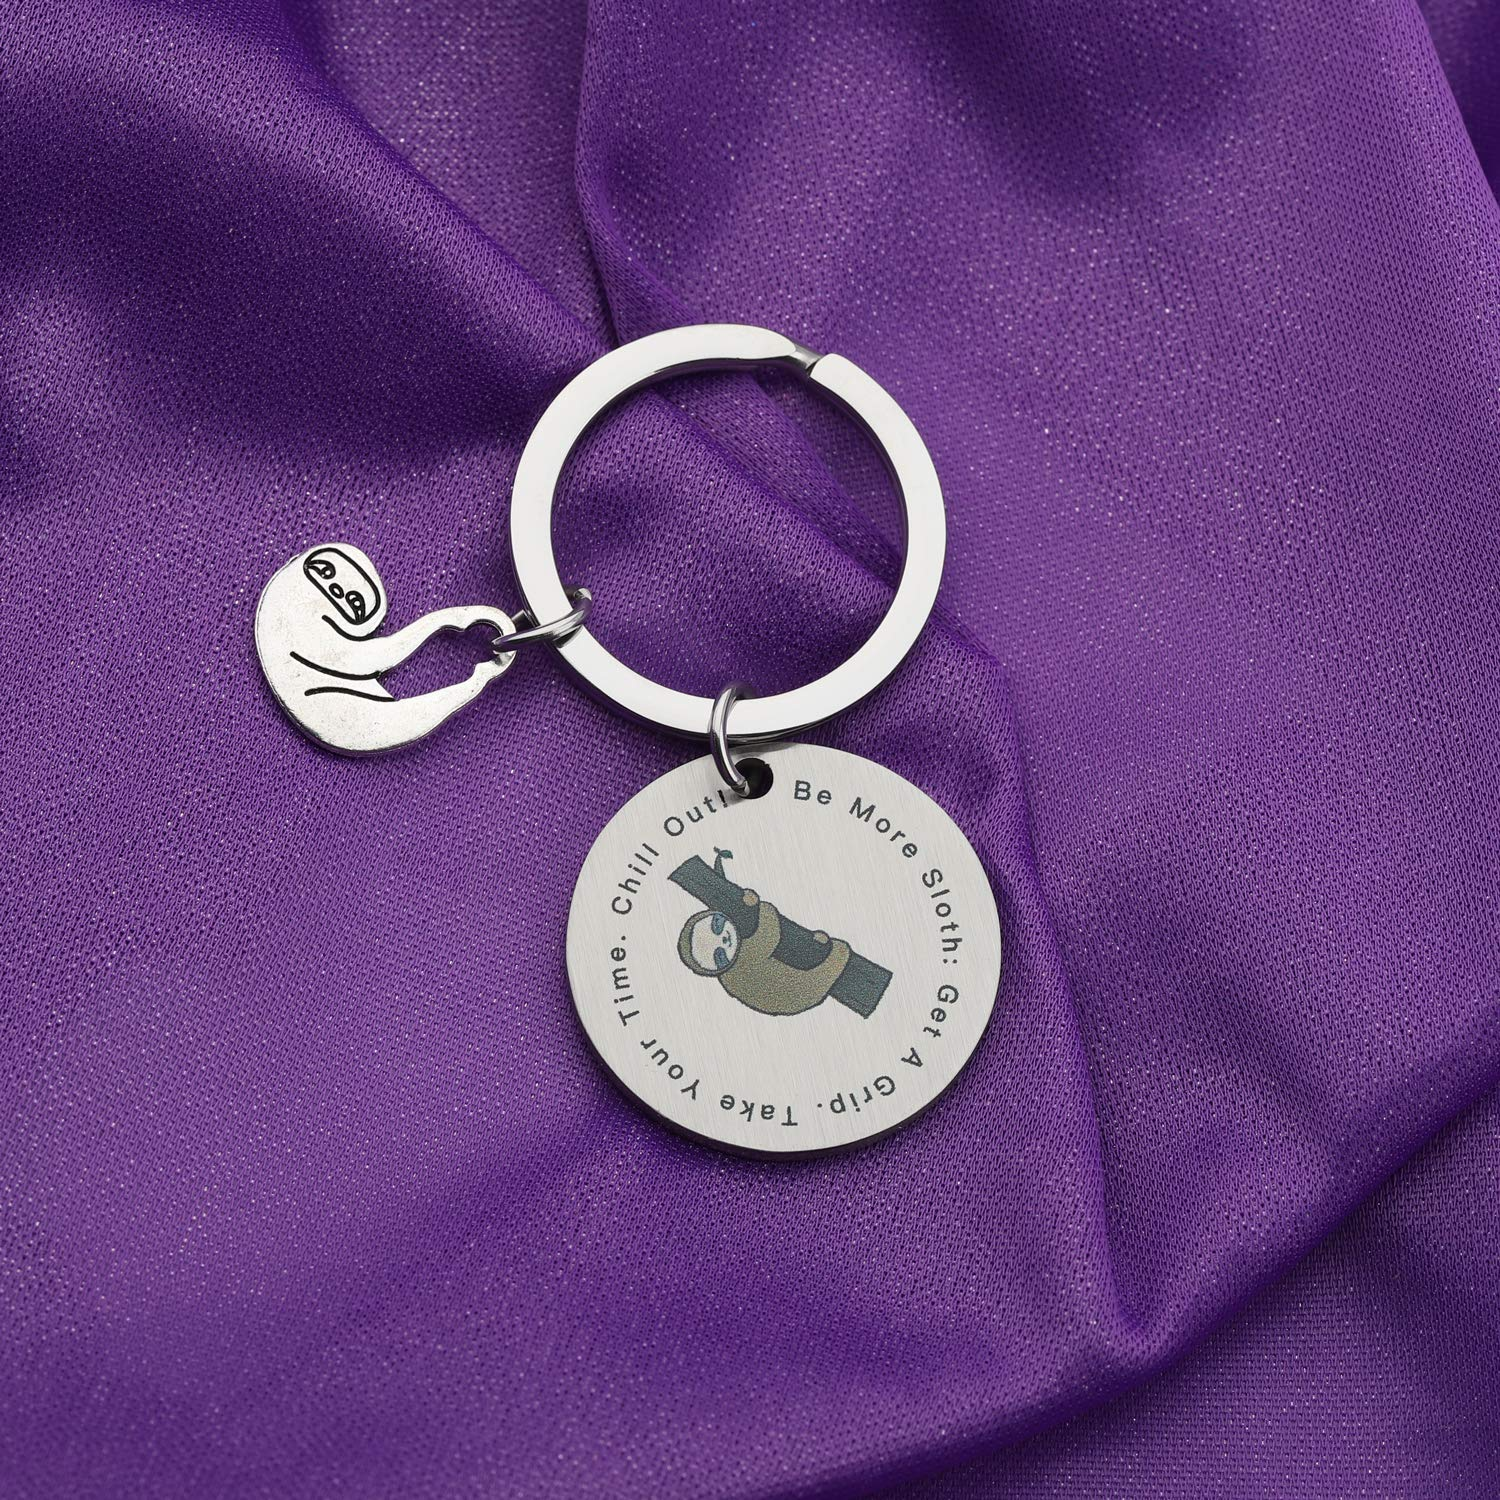 Sloth Lover Jewelry Be More Sloth Get A Grip Take Your Time Chill Out Sloth Keychain Animal Jewelry